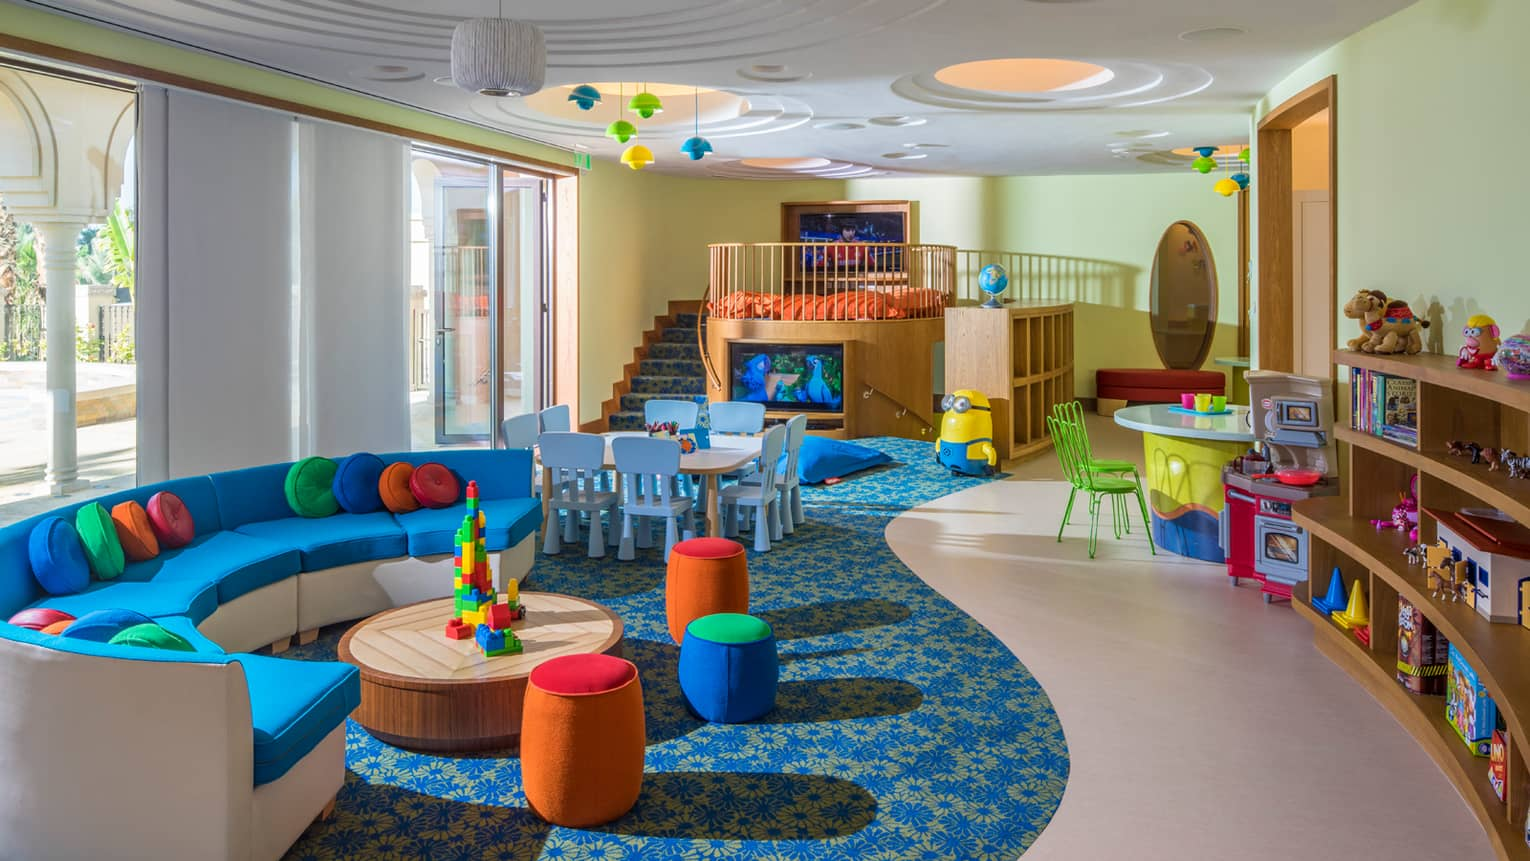 Complimentary kids centre room with curved, bright sofa and cushions, toys and TV loft